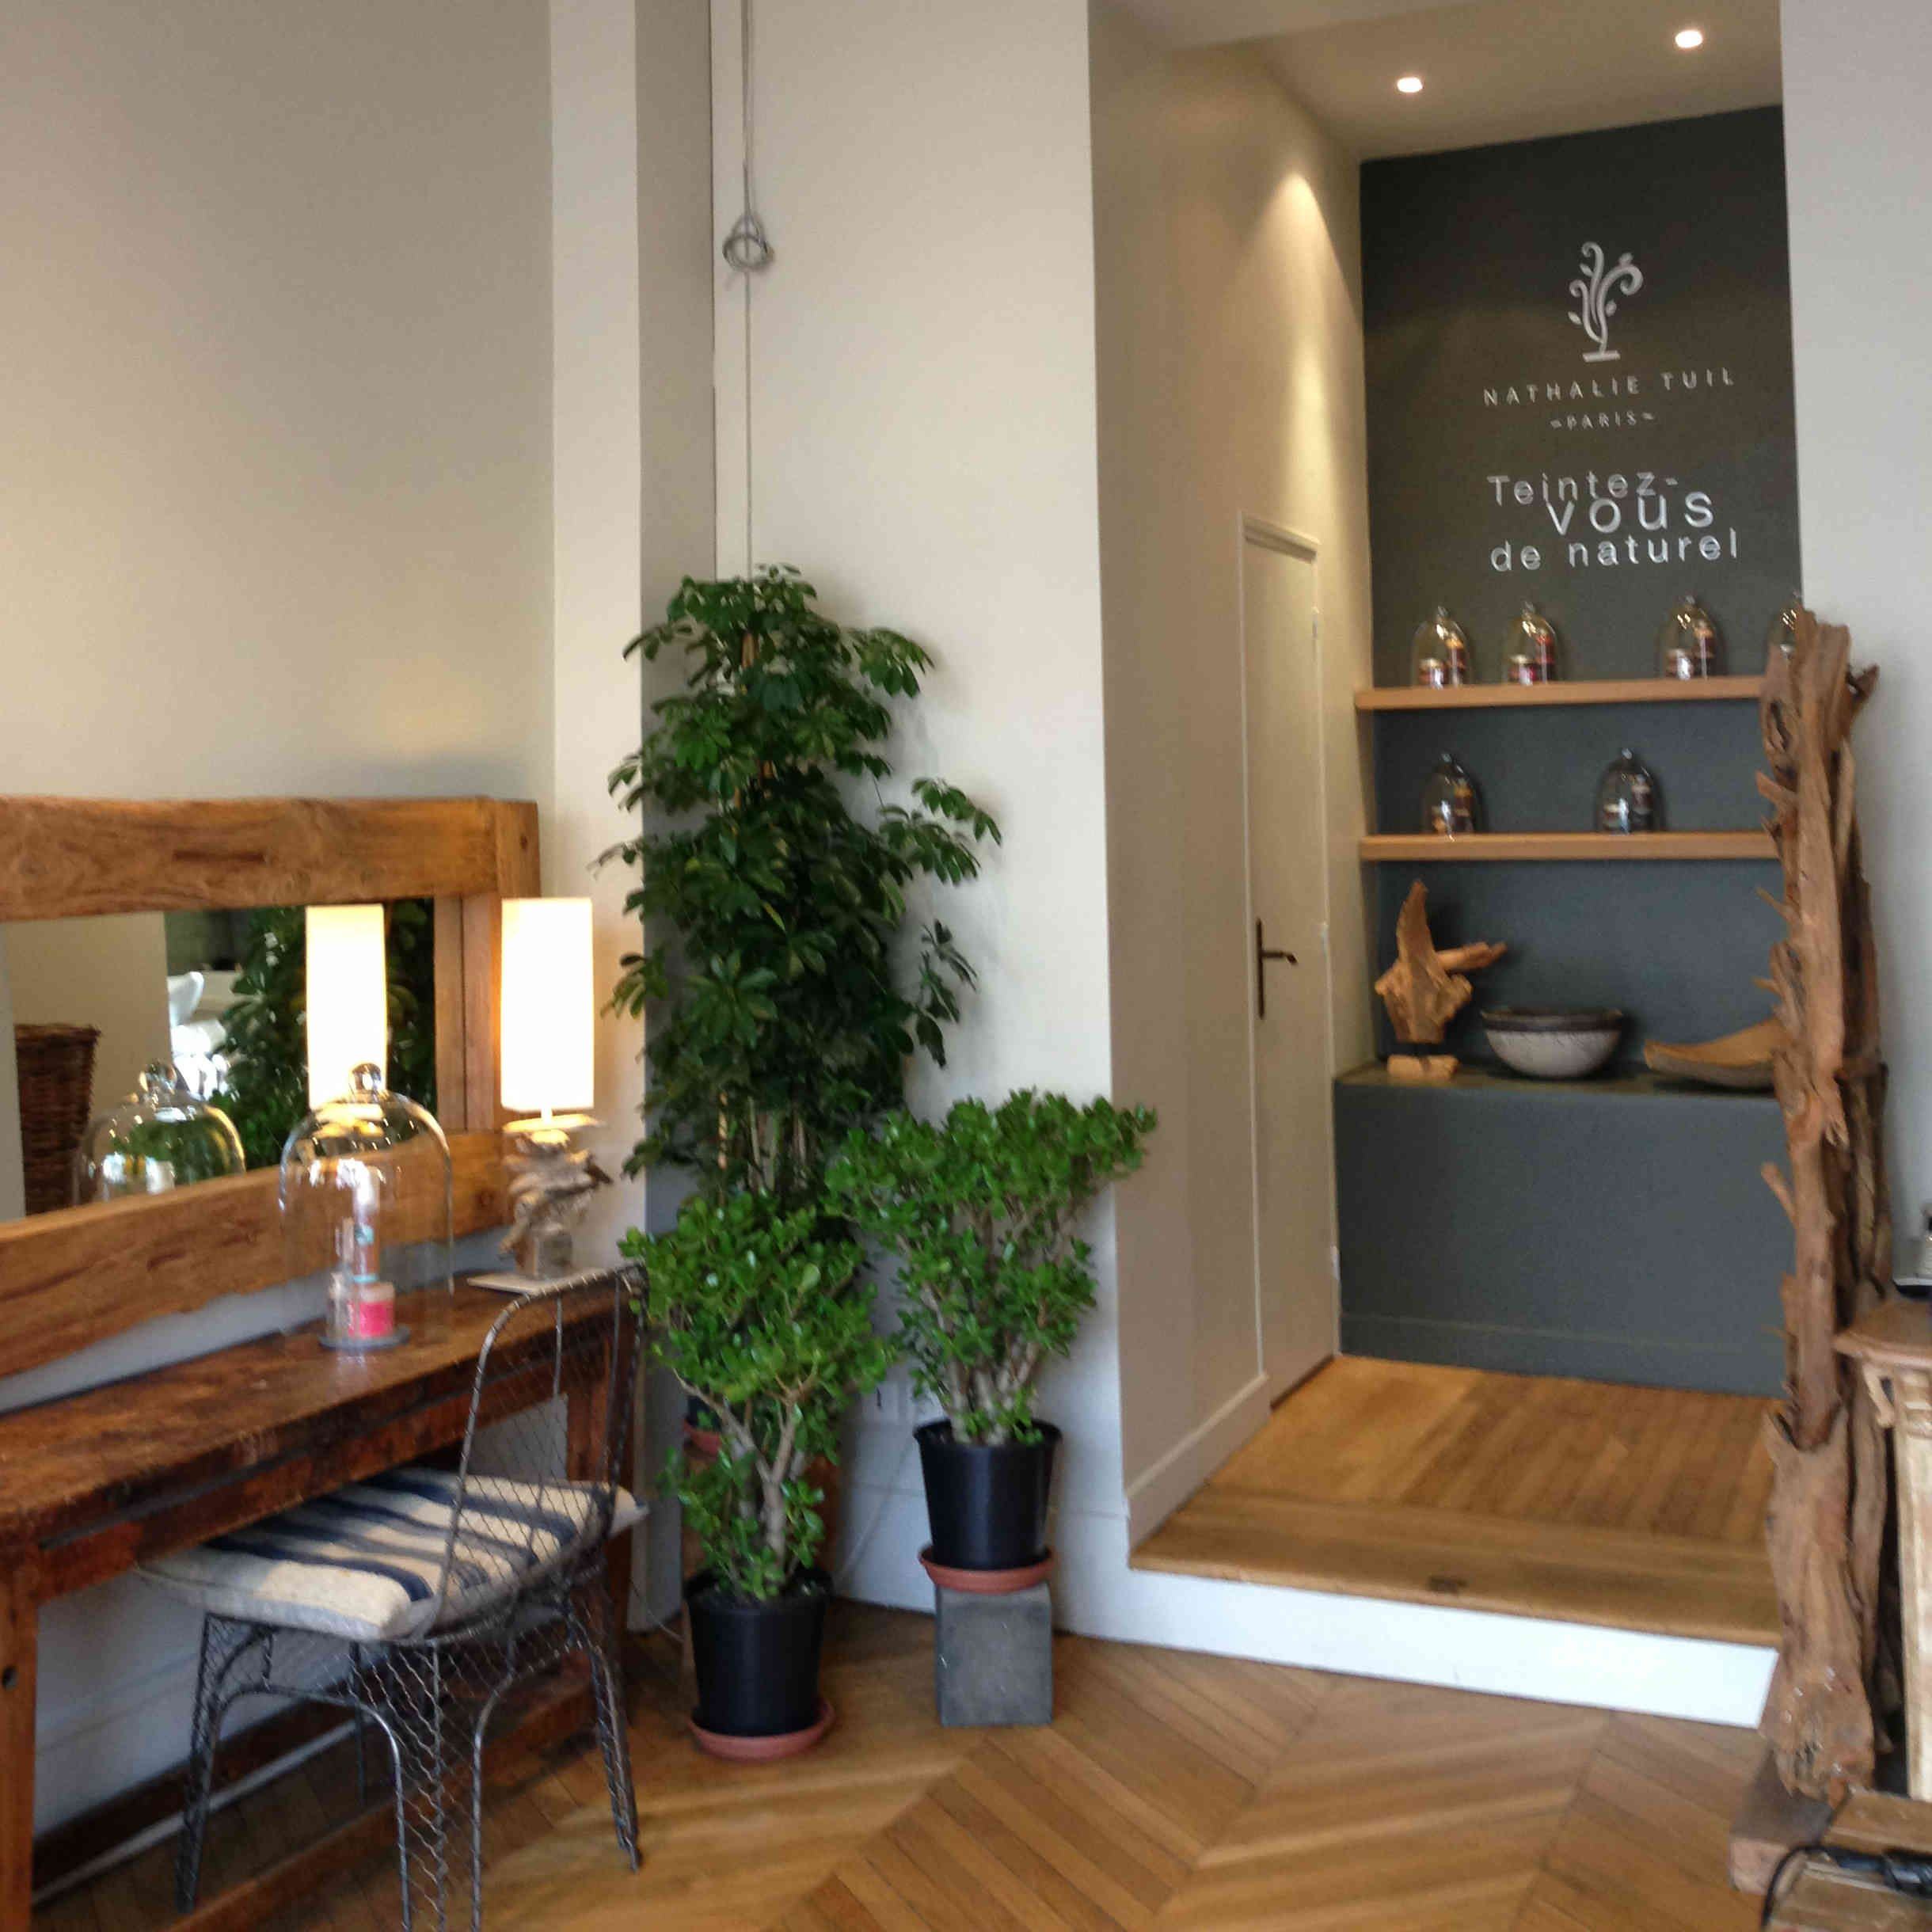 le salon nathalietuil paris soins du cheveu largile bio coloration vgtale coupe sec efficace fengshui chaleureux efficace et zen - France In Paris Coloration Vgtale